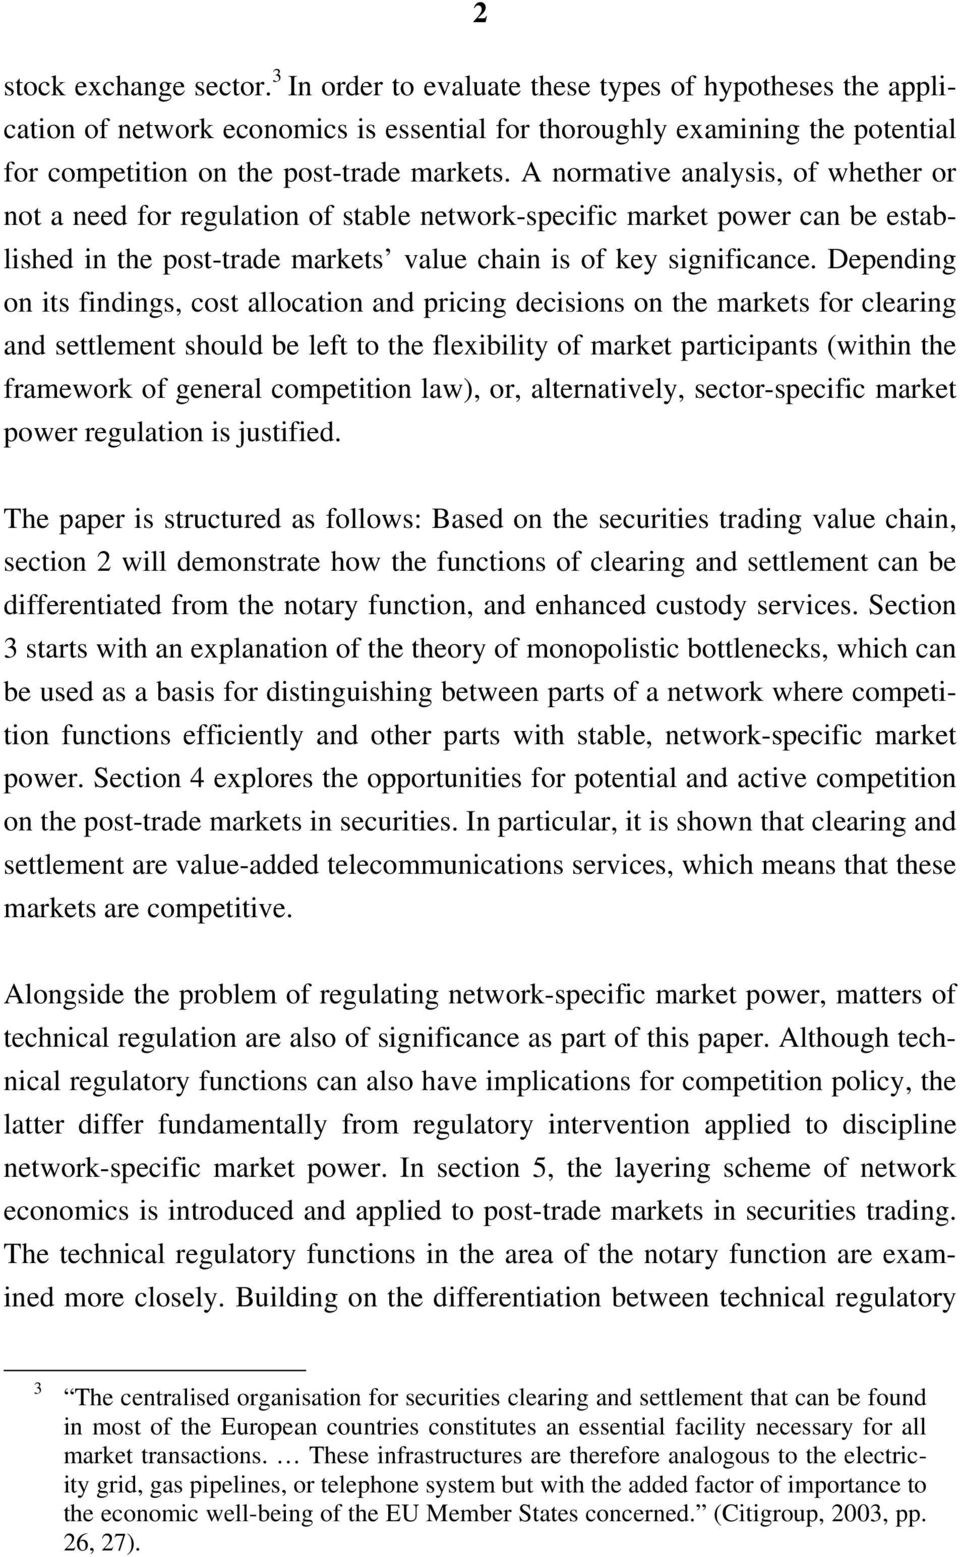 A normative analysis, of whether or not a need for regulation of stable network-specific market power can be established in the post-trade markets value chain is of key significance.